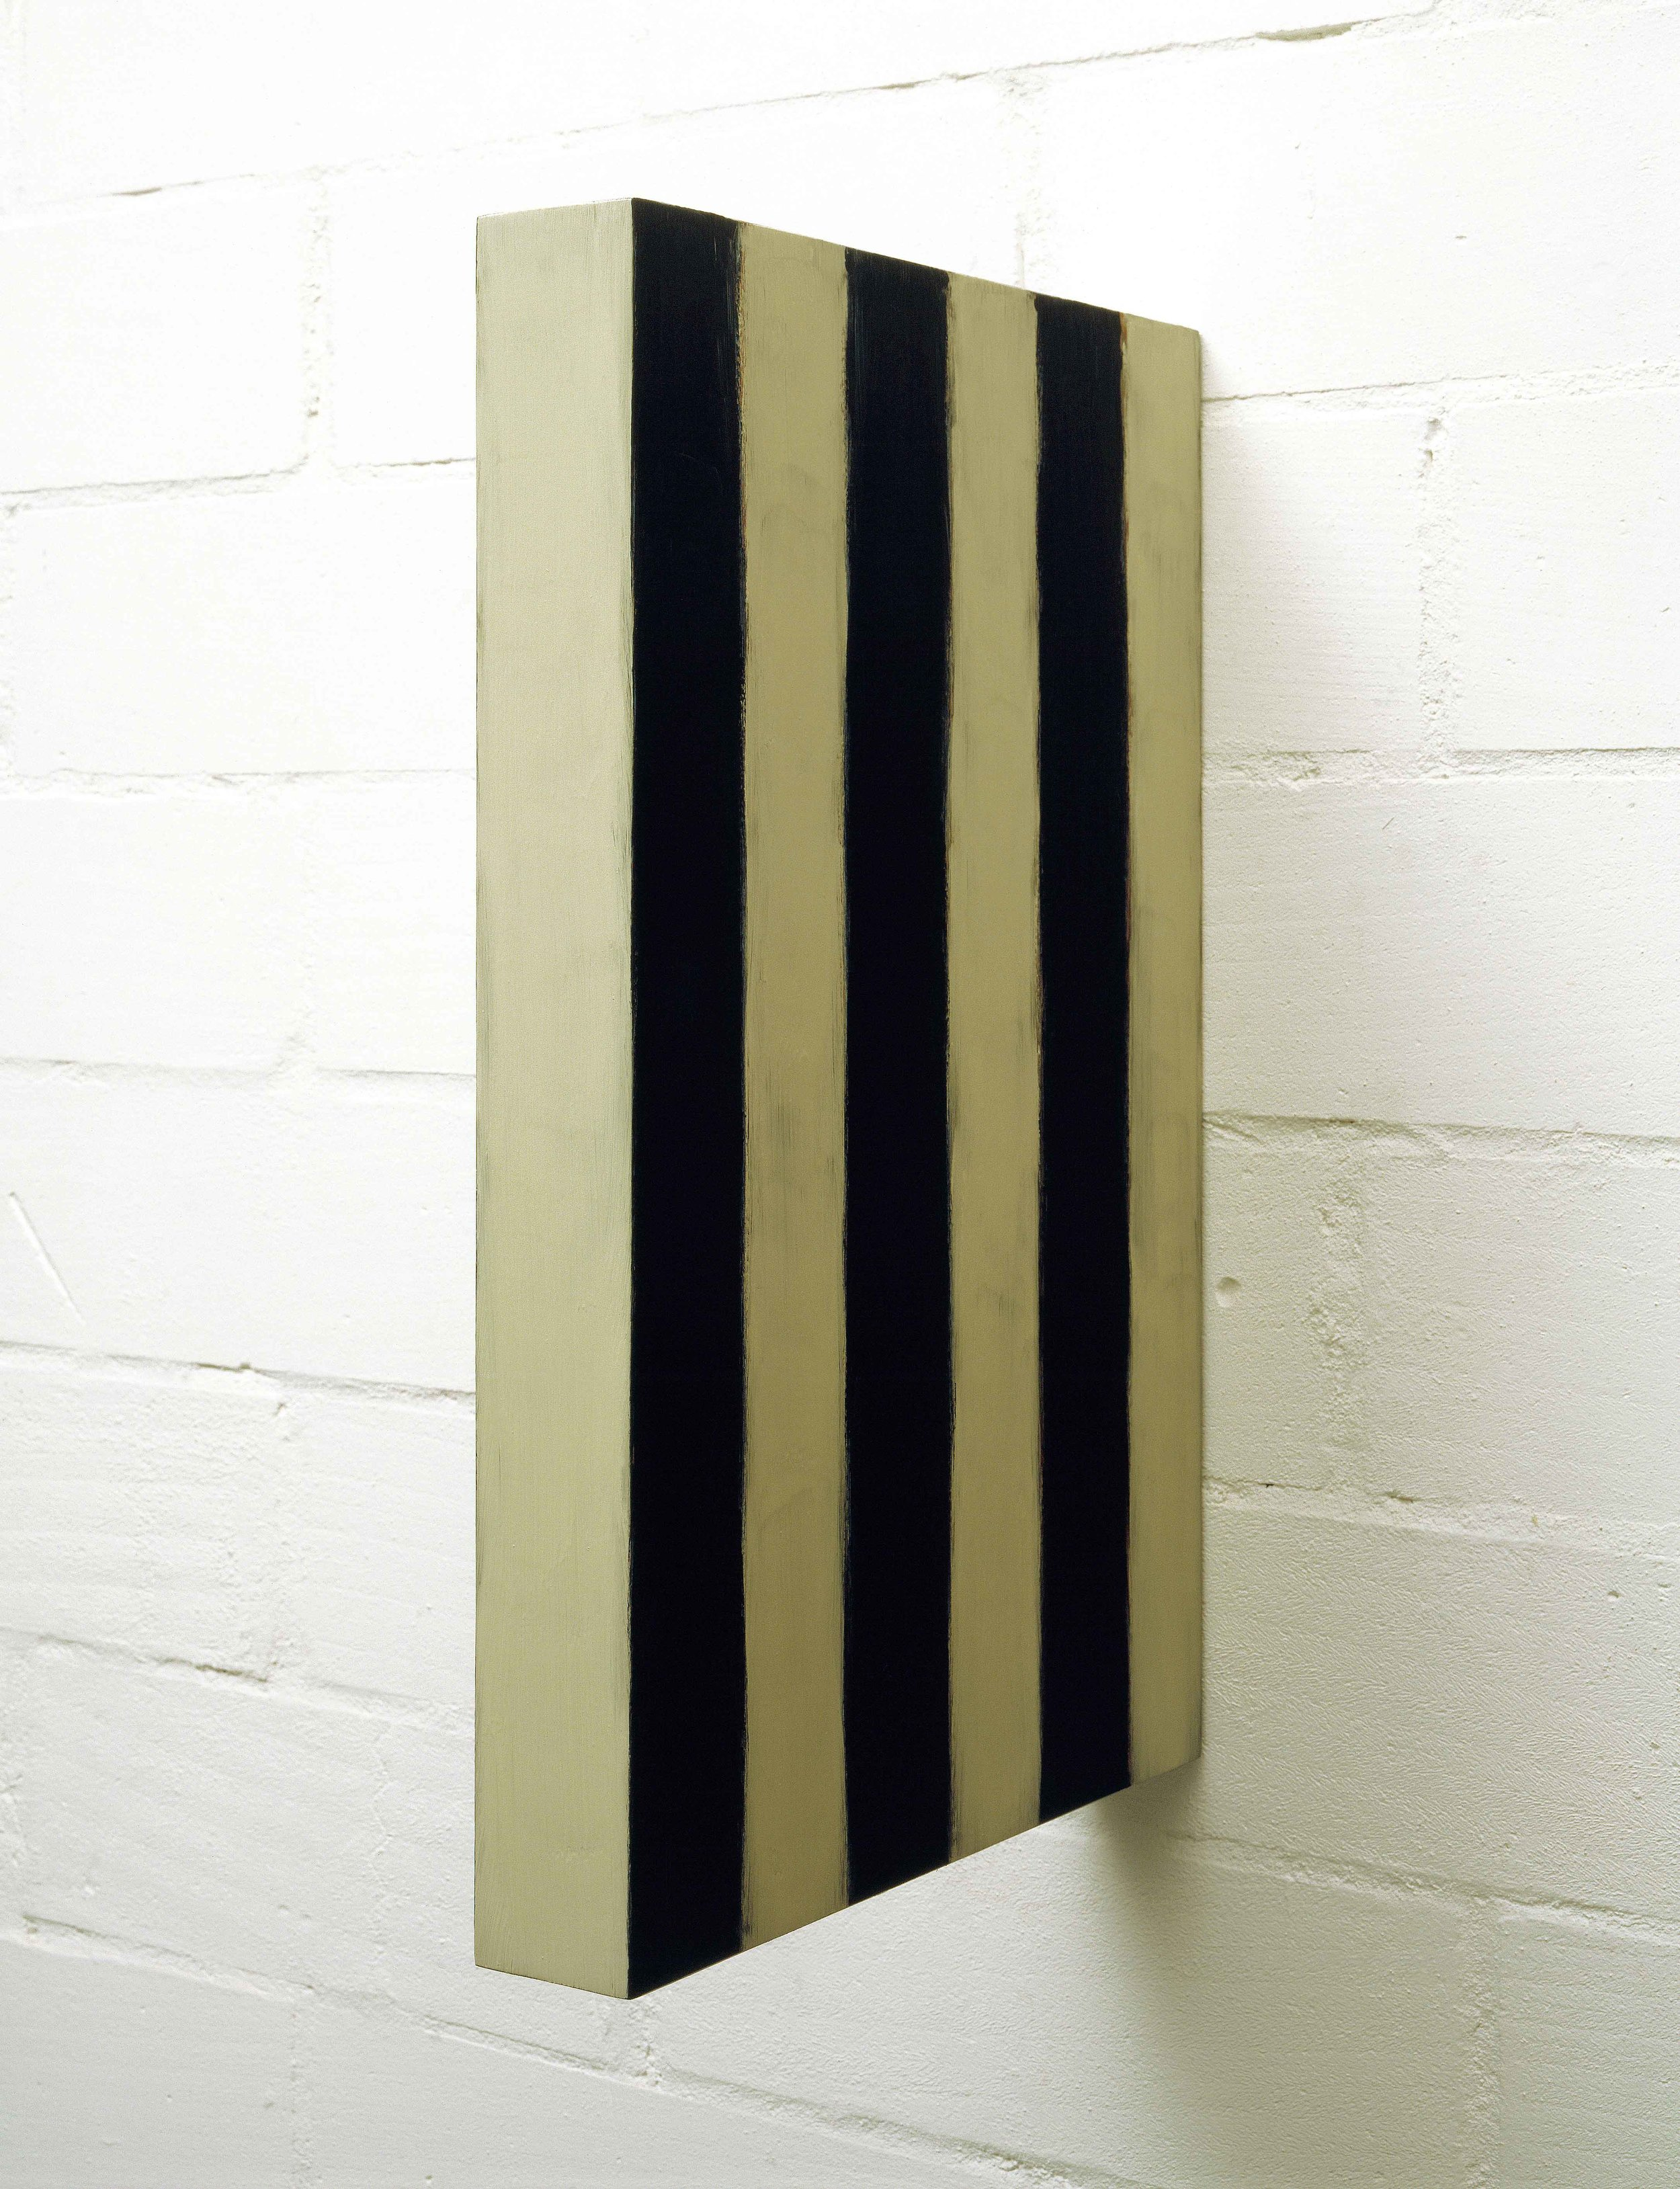 Sean-Scully-Floating-Painting-5-1996.jpg